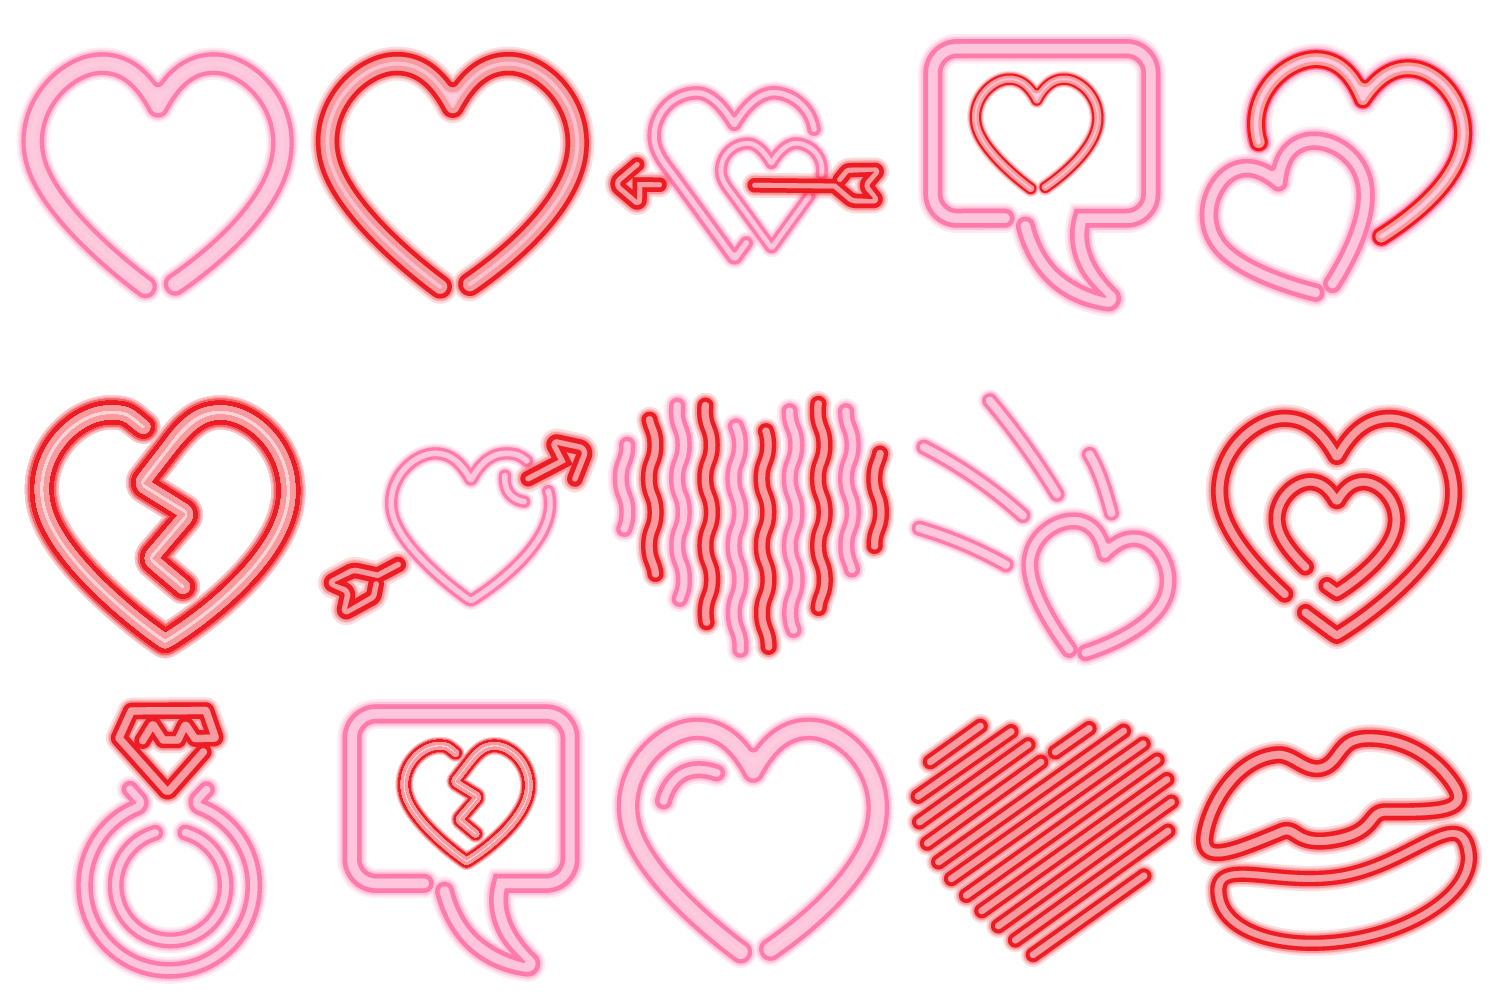 Neon Heart Collection example image 2